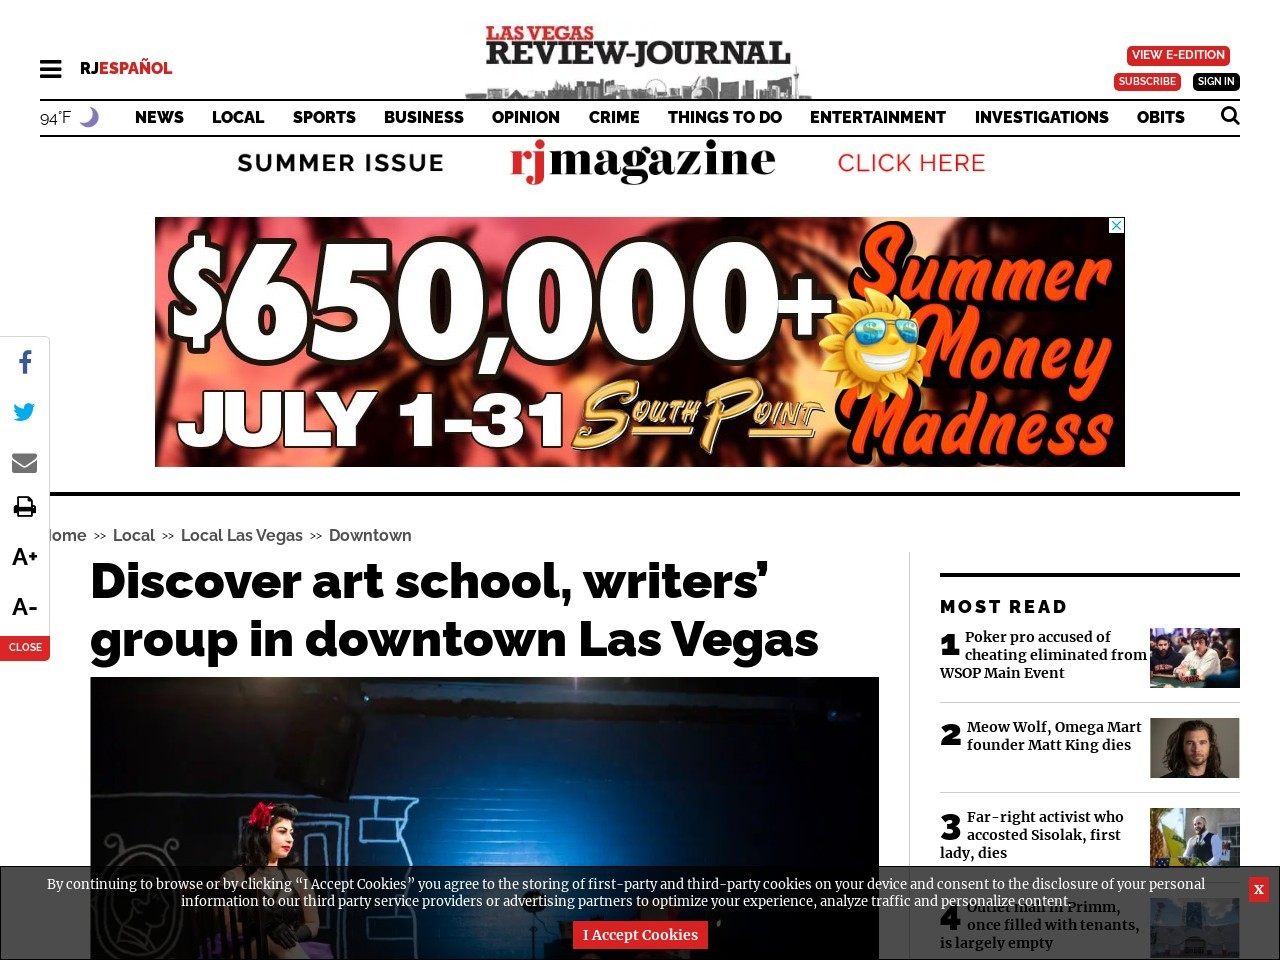 Discover art school, writers' group in downtown Las Vegas